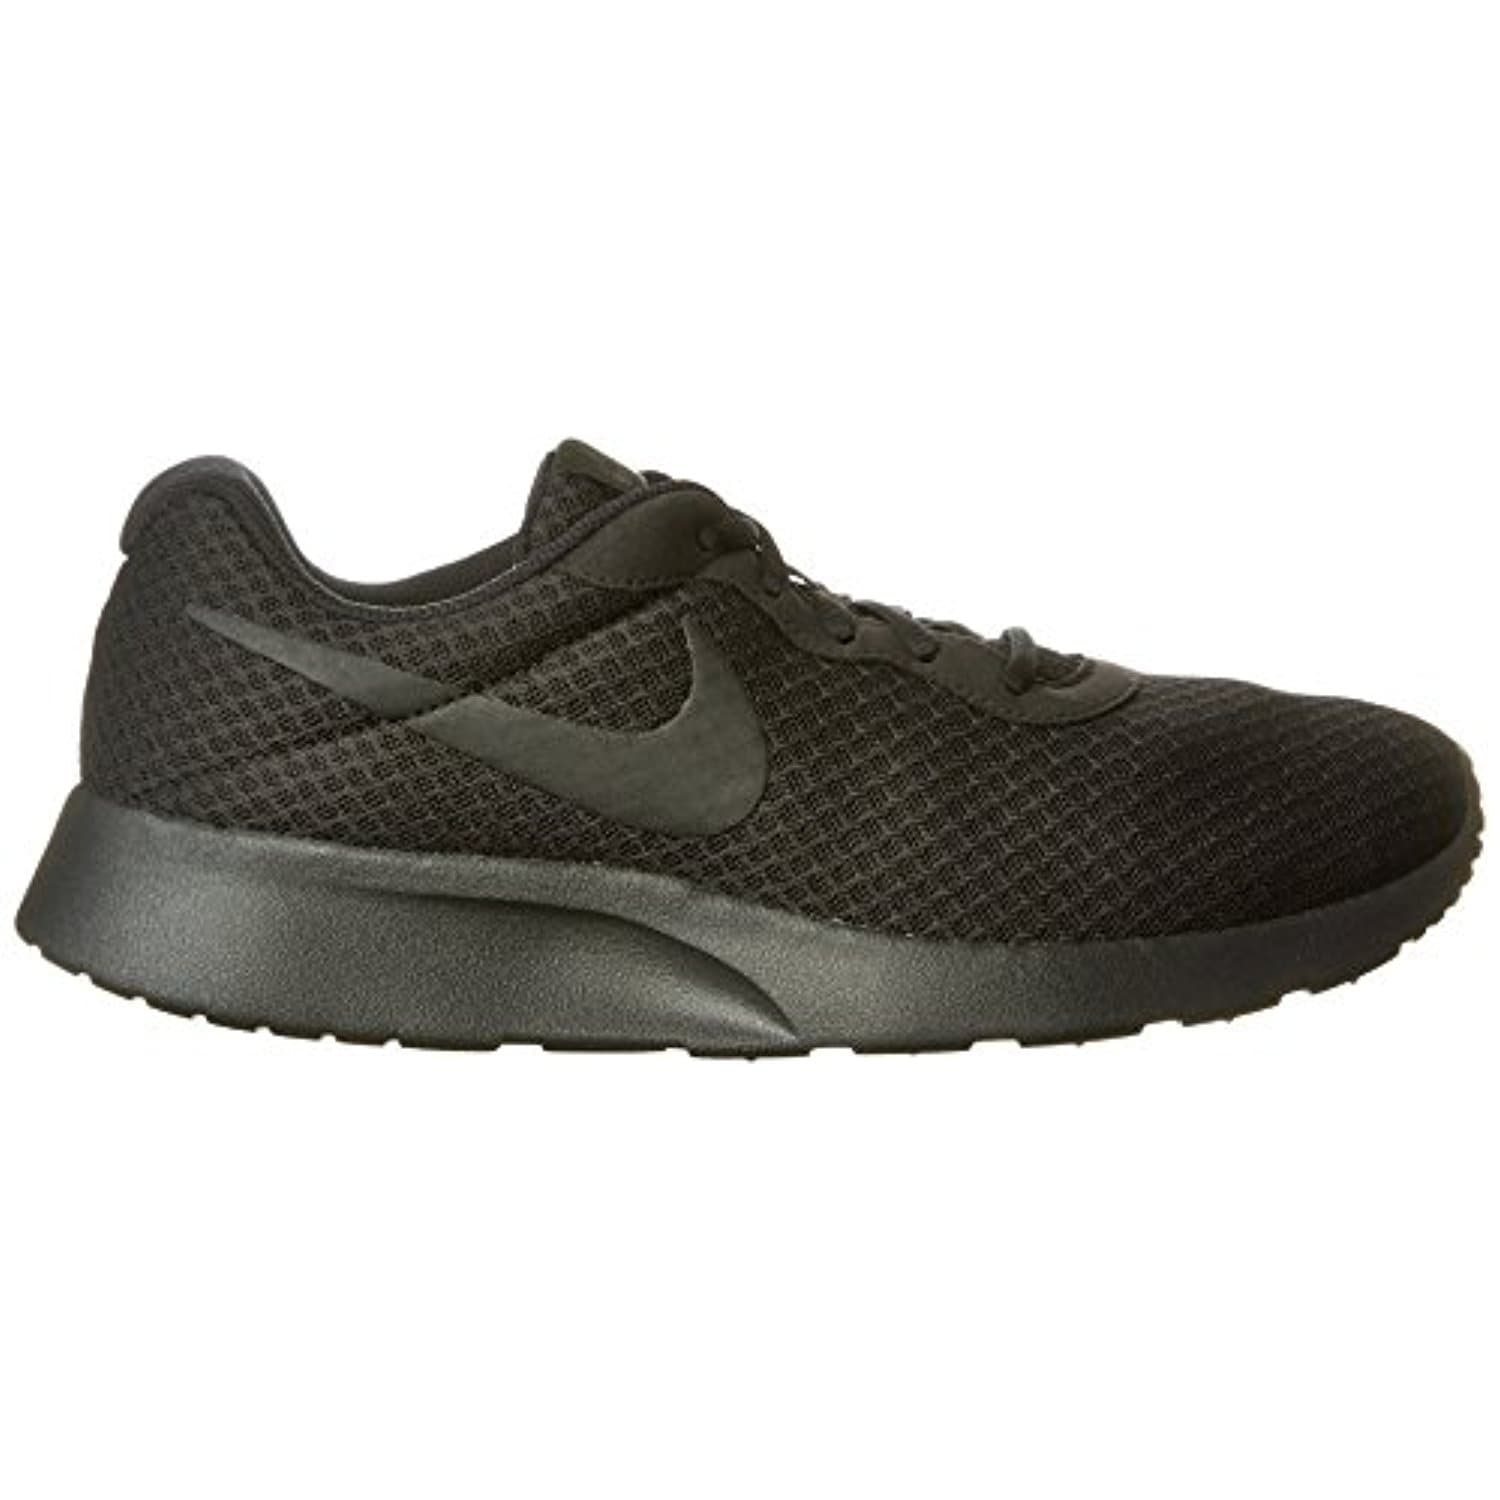 Nike Mens Tanjun Running Sneaker Black/Anthracite/Black -  black/black/anthracite